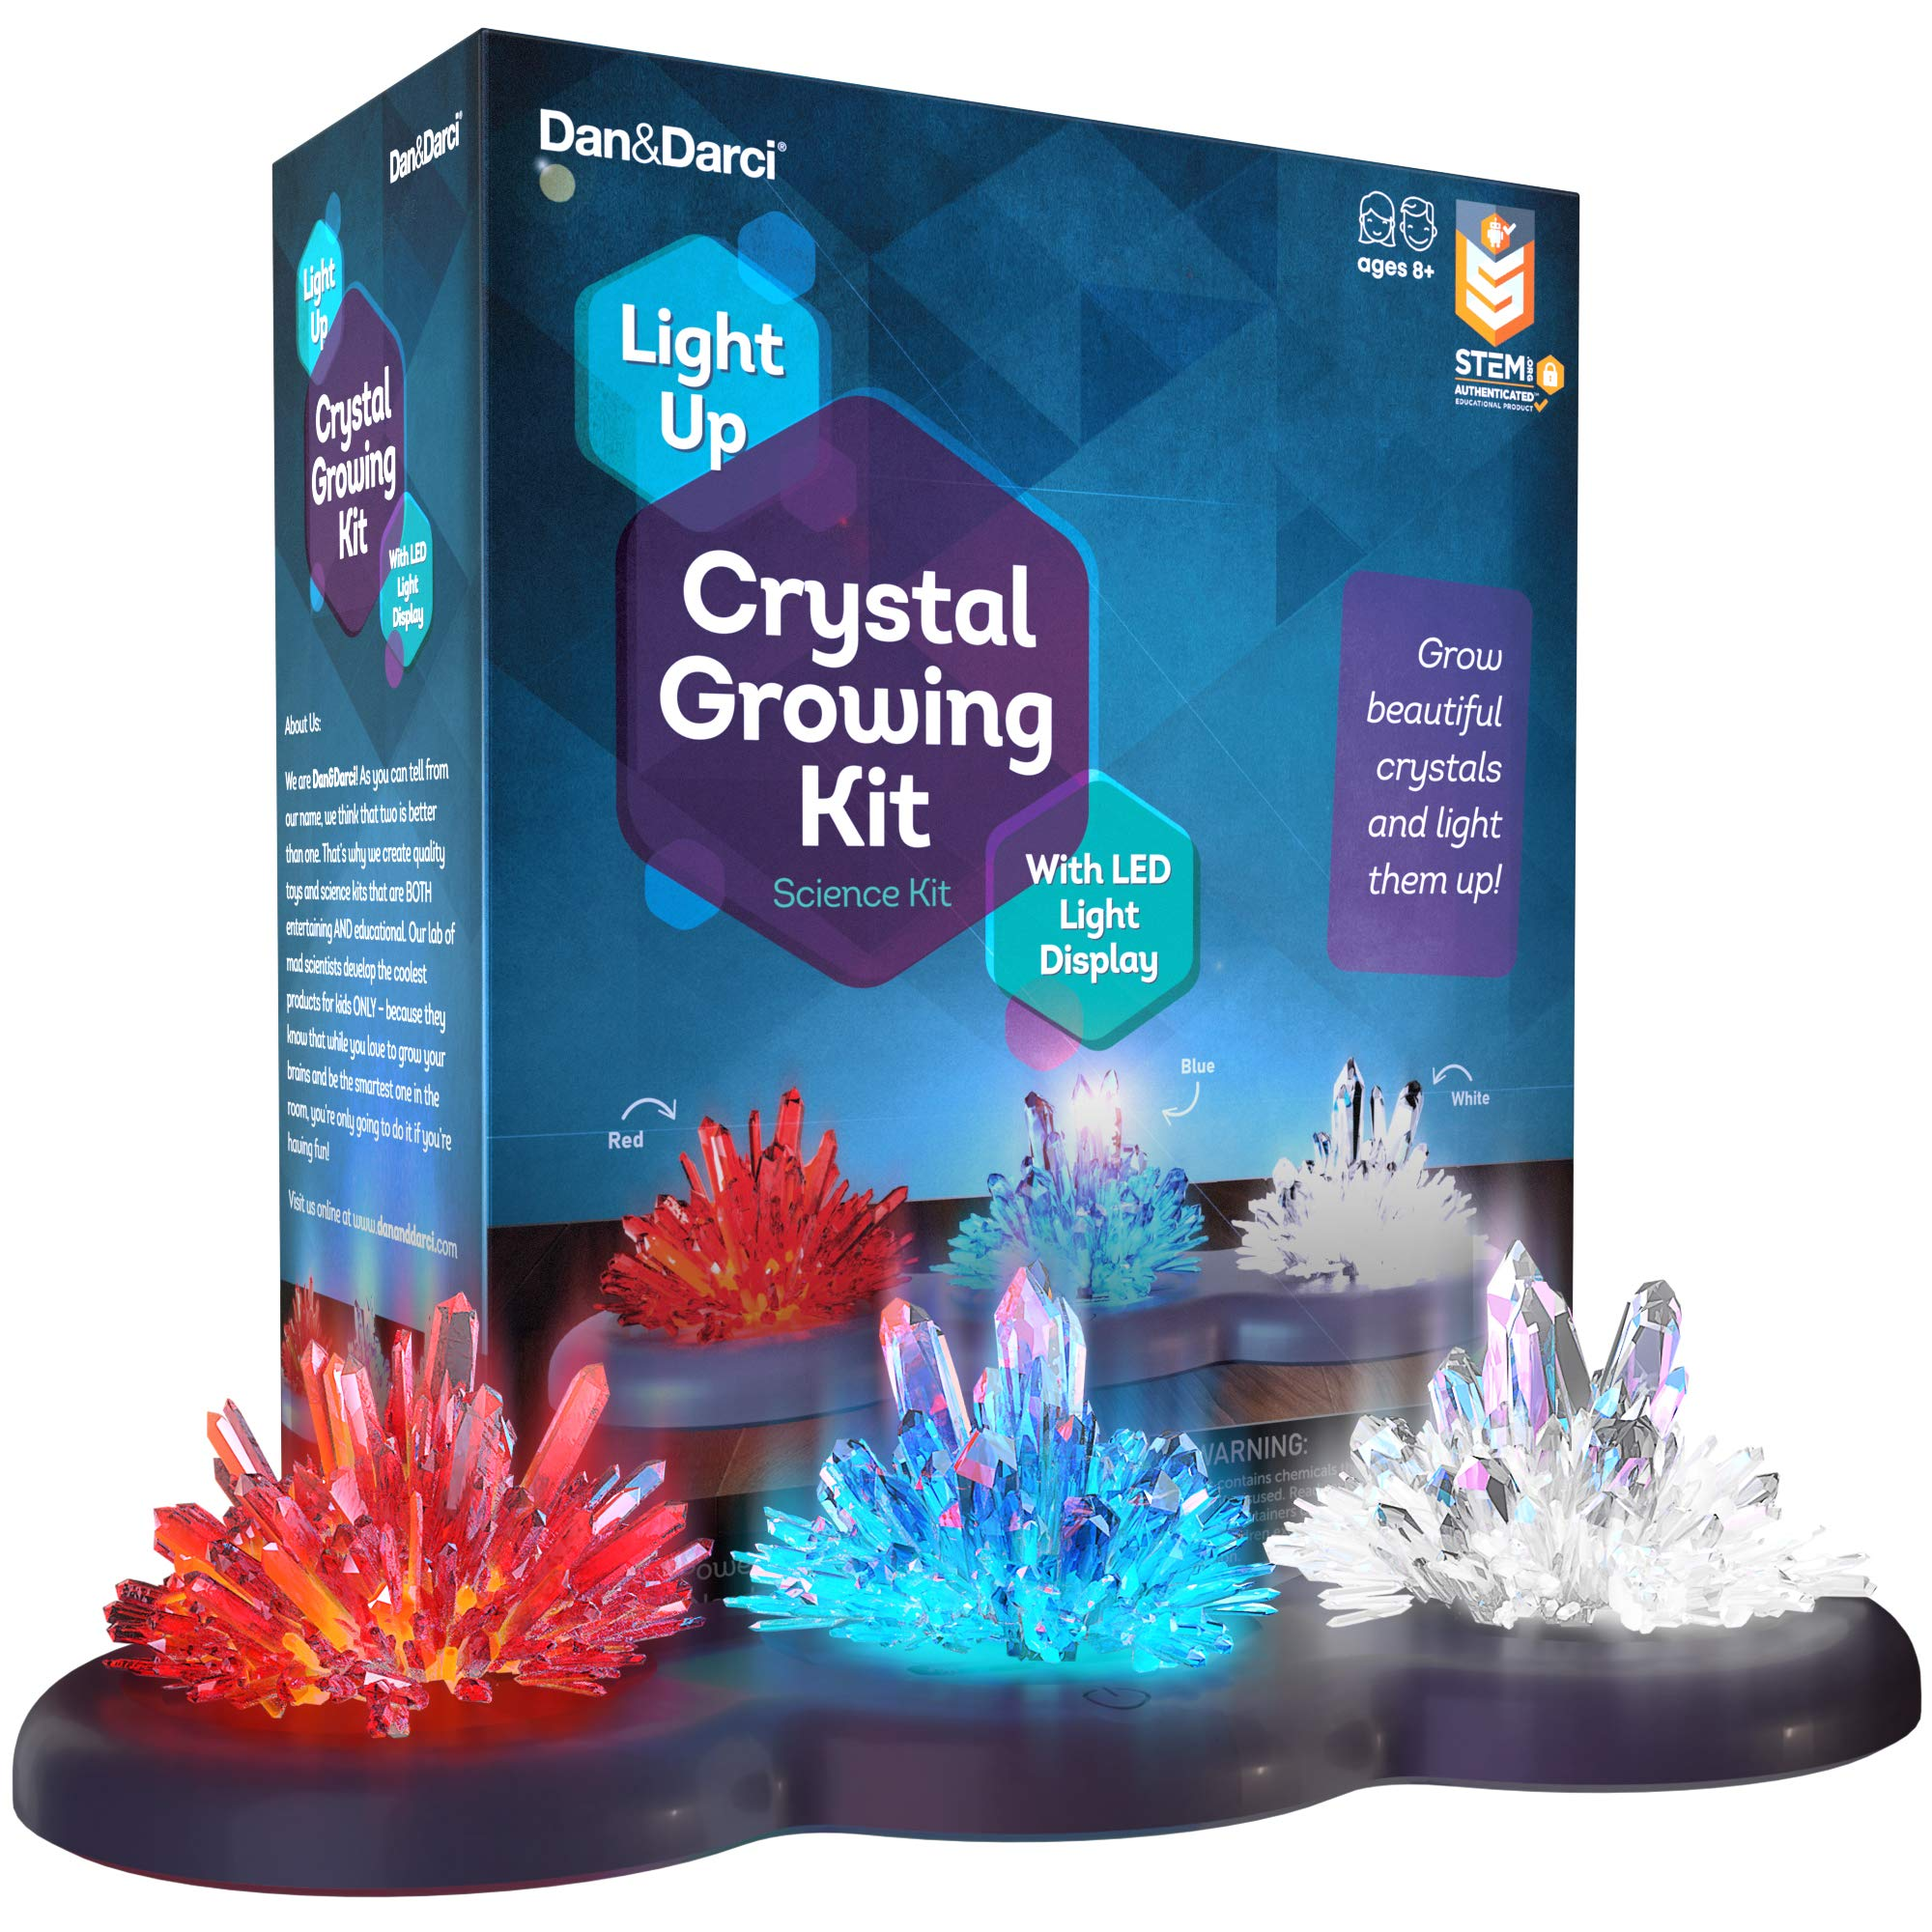 Dan&Darci Light-up Crystal Growing Kit - Grow Your Own Crystals and Make Them Glow! Great Science Experiment Gift for Kids, Boys & Girls | STEM Toys | Crystal Making (Red White Blue)